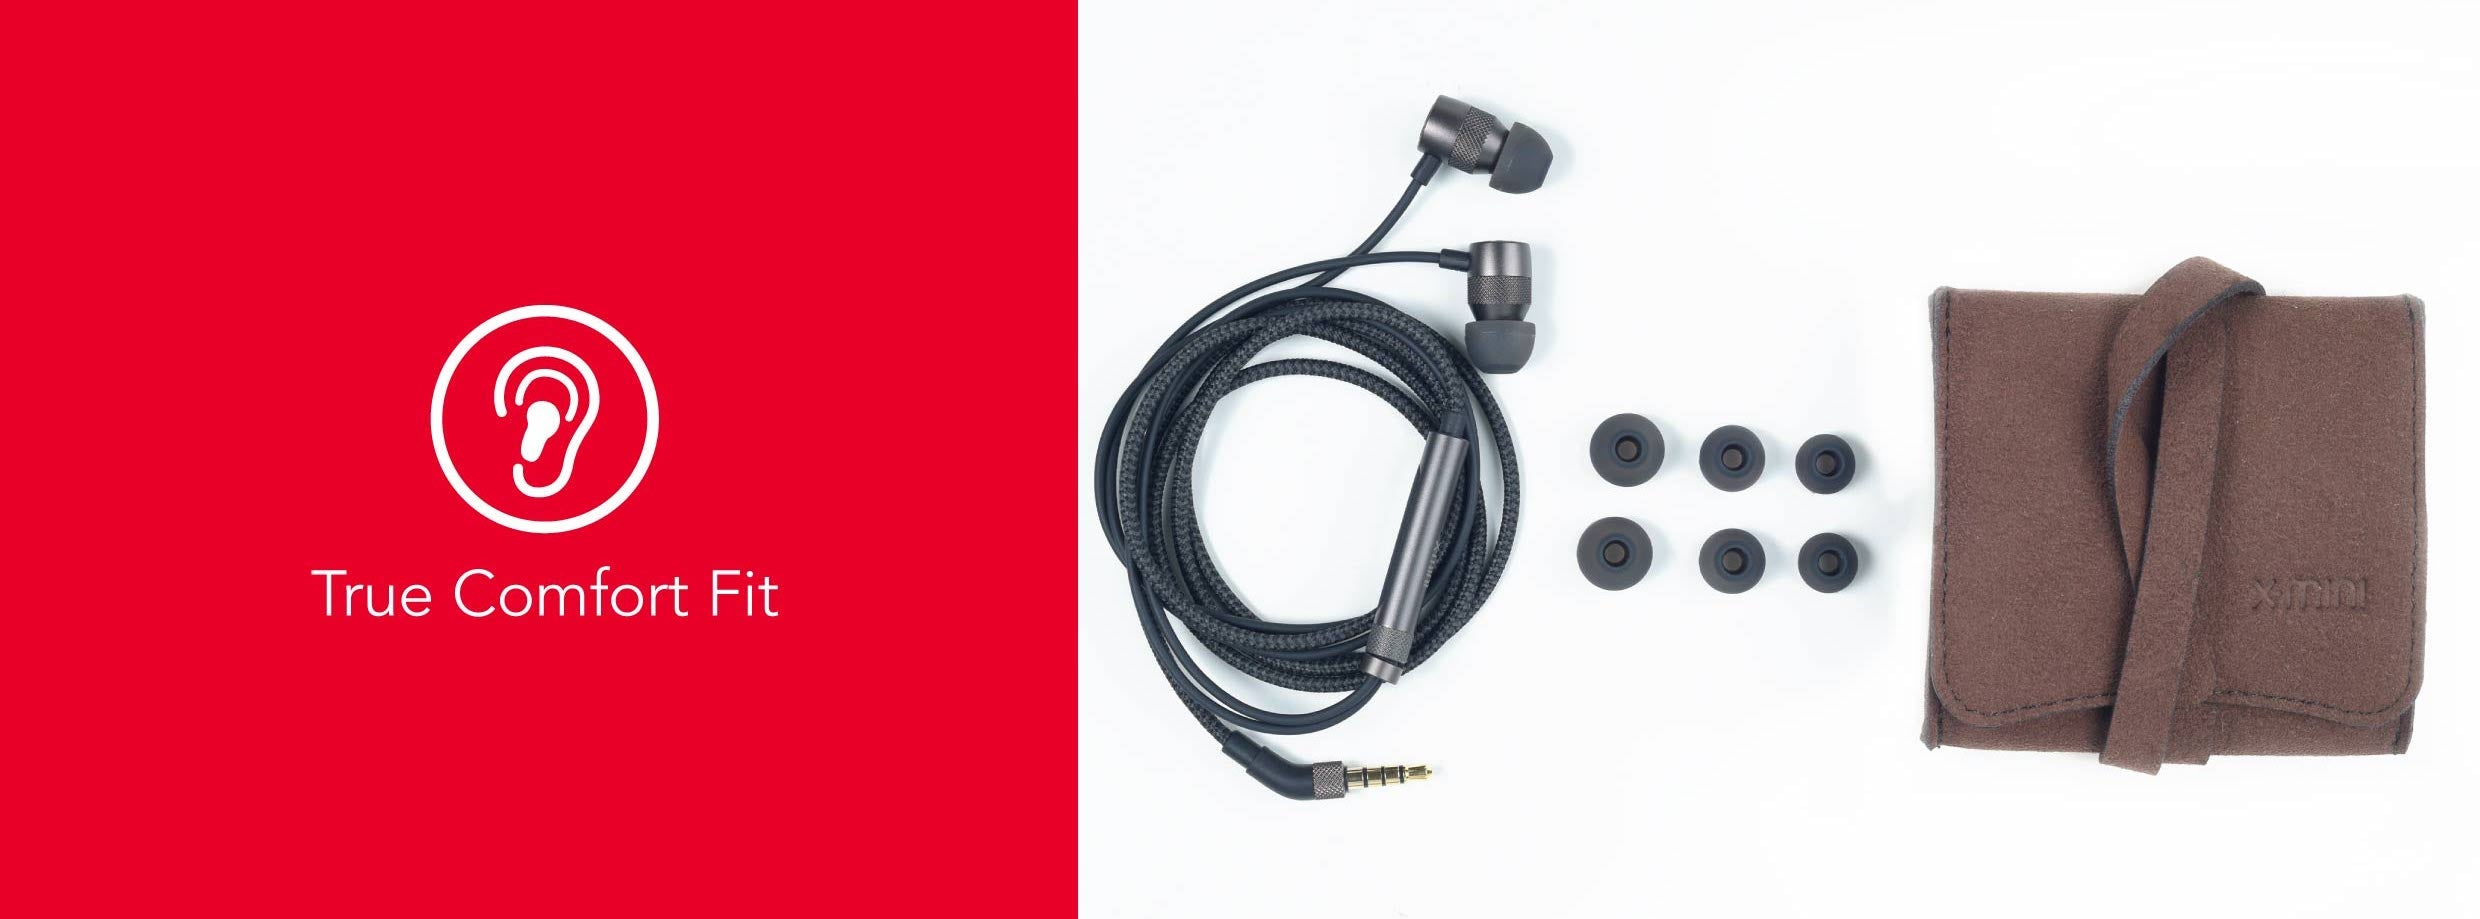 X-mini-Xtlas-Full-Bodied-Wired-Xoundbuds-Hi-Res-Audio-True-Comfort-Fit